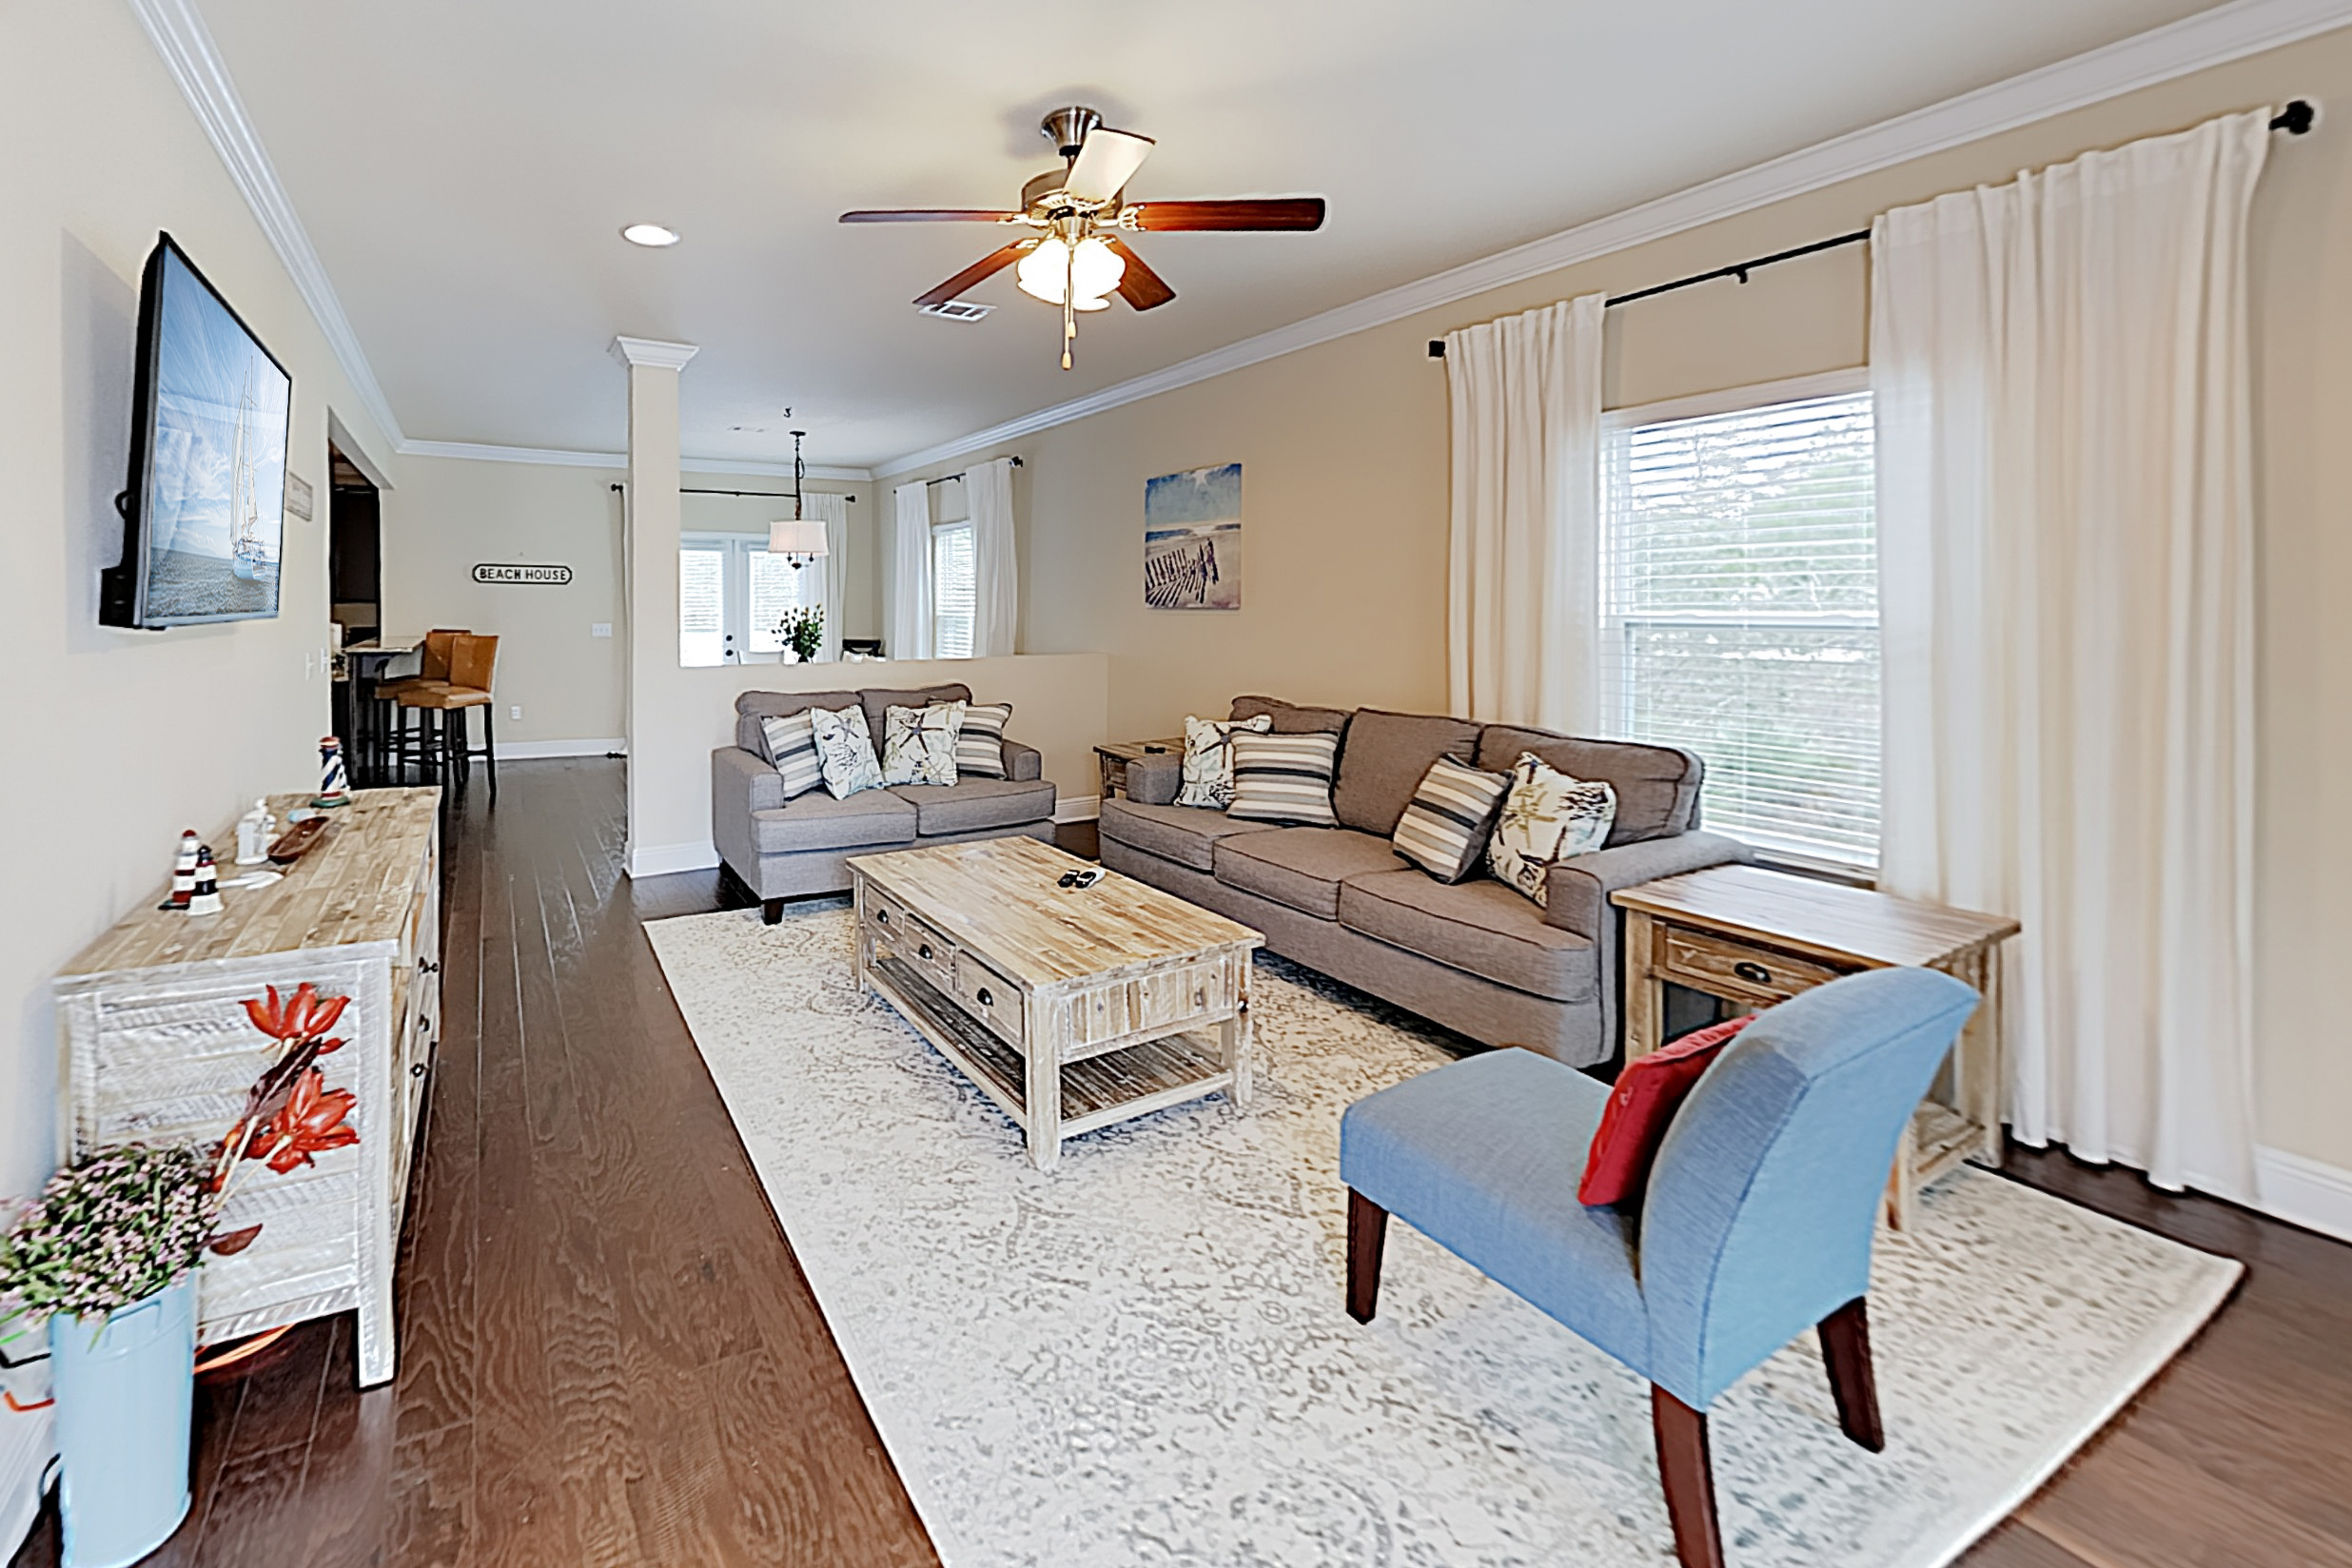 Inlet Beach FL Vacation Rental Welcome to Inlet